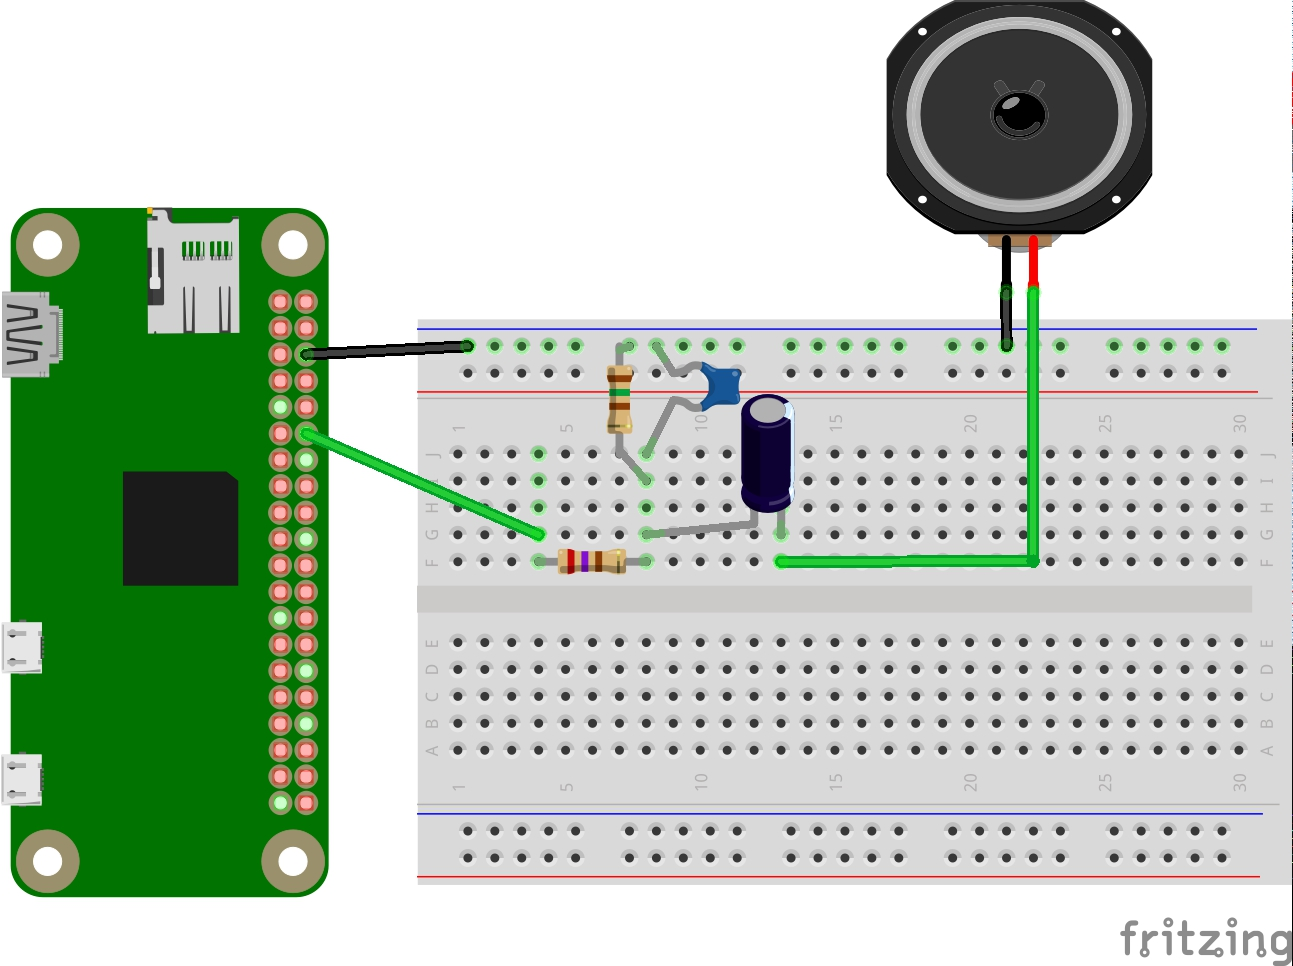 4 Enable Audio Via Pwm Fgebhart Smart Alarm Wiki Github Low Pass Filter Circuit Together With A Small We Are Able To Generate Basic Output Consider The Following Schematic Diagram For Wiring Of